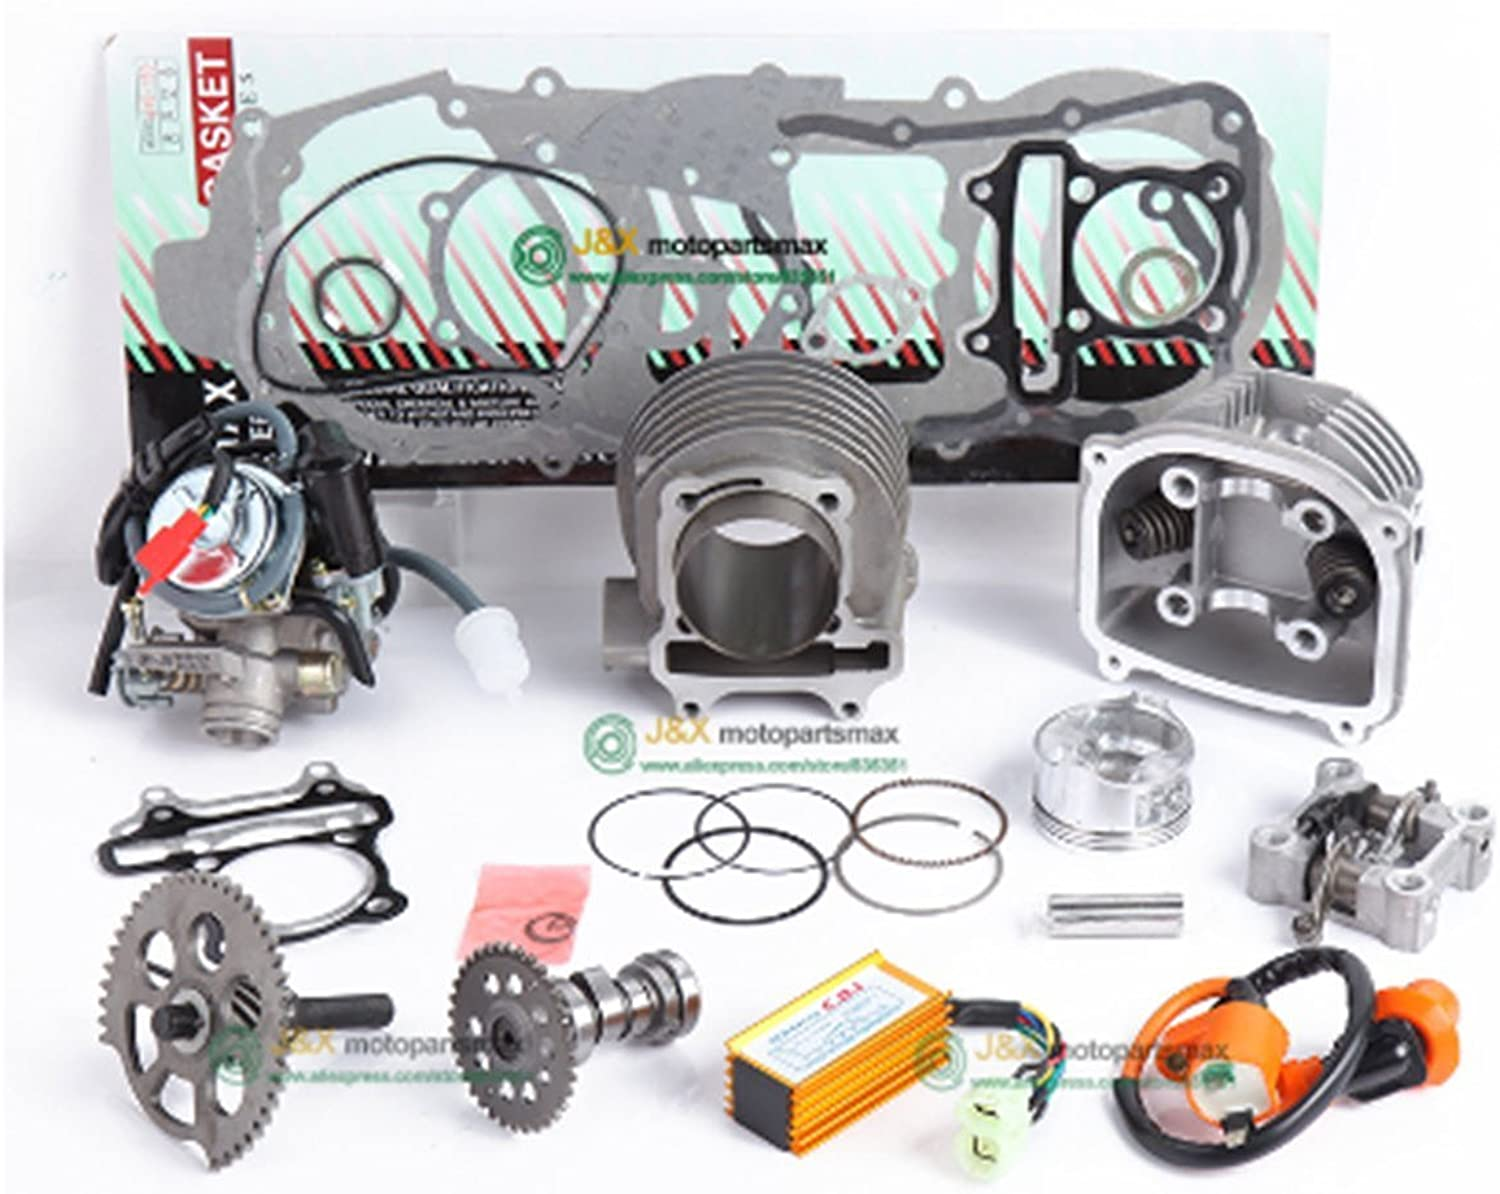 GY6 125cc 150cc Upgrade to GY6 200cc add Power at Least 30% Racing Camshaft CDI Muffler Performance Exhaust,Oil Pump and Gear Accessories